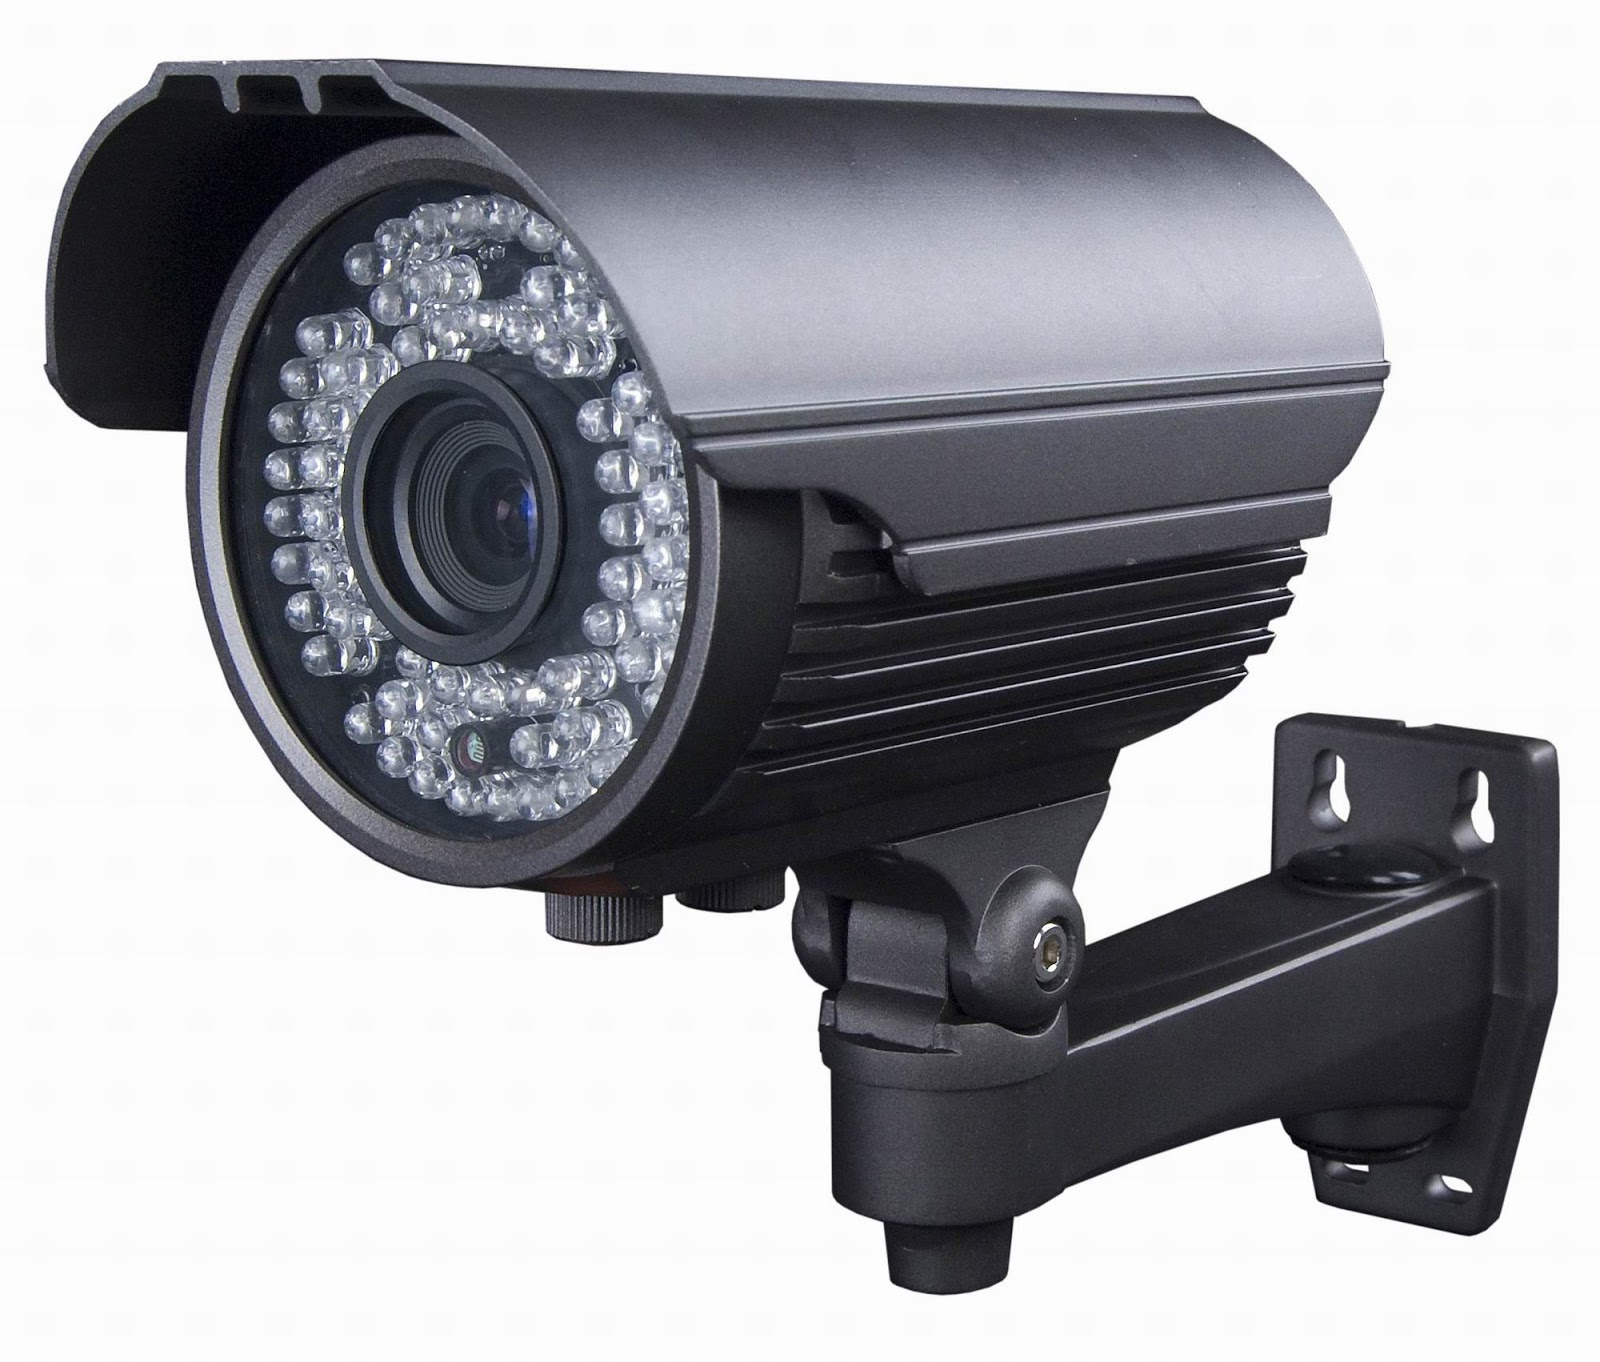 Outdoor video surveillance cameras for home security